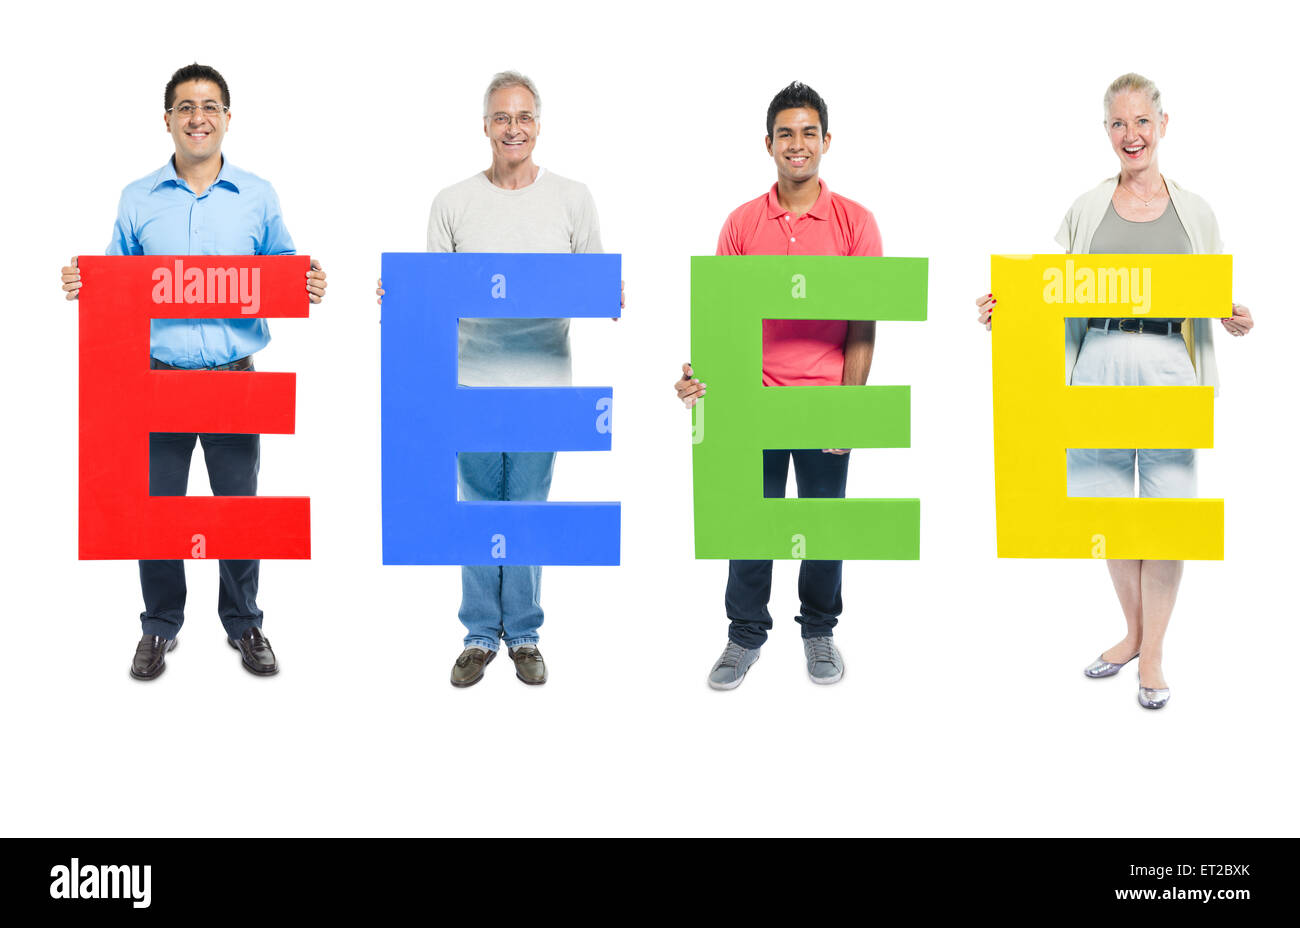 Group of Business people holding the letter 'E' - Stock Image